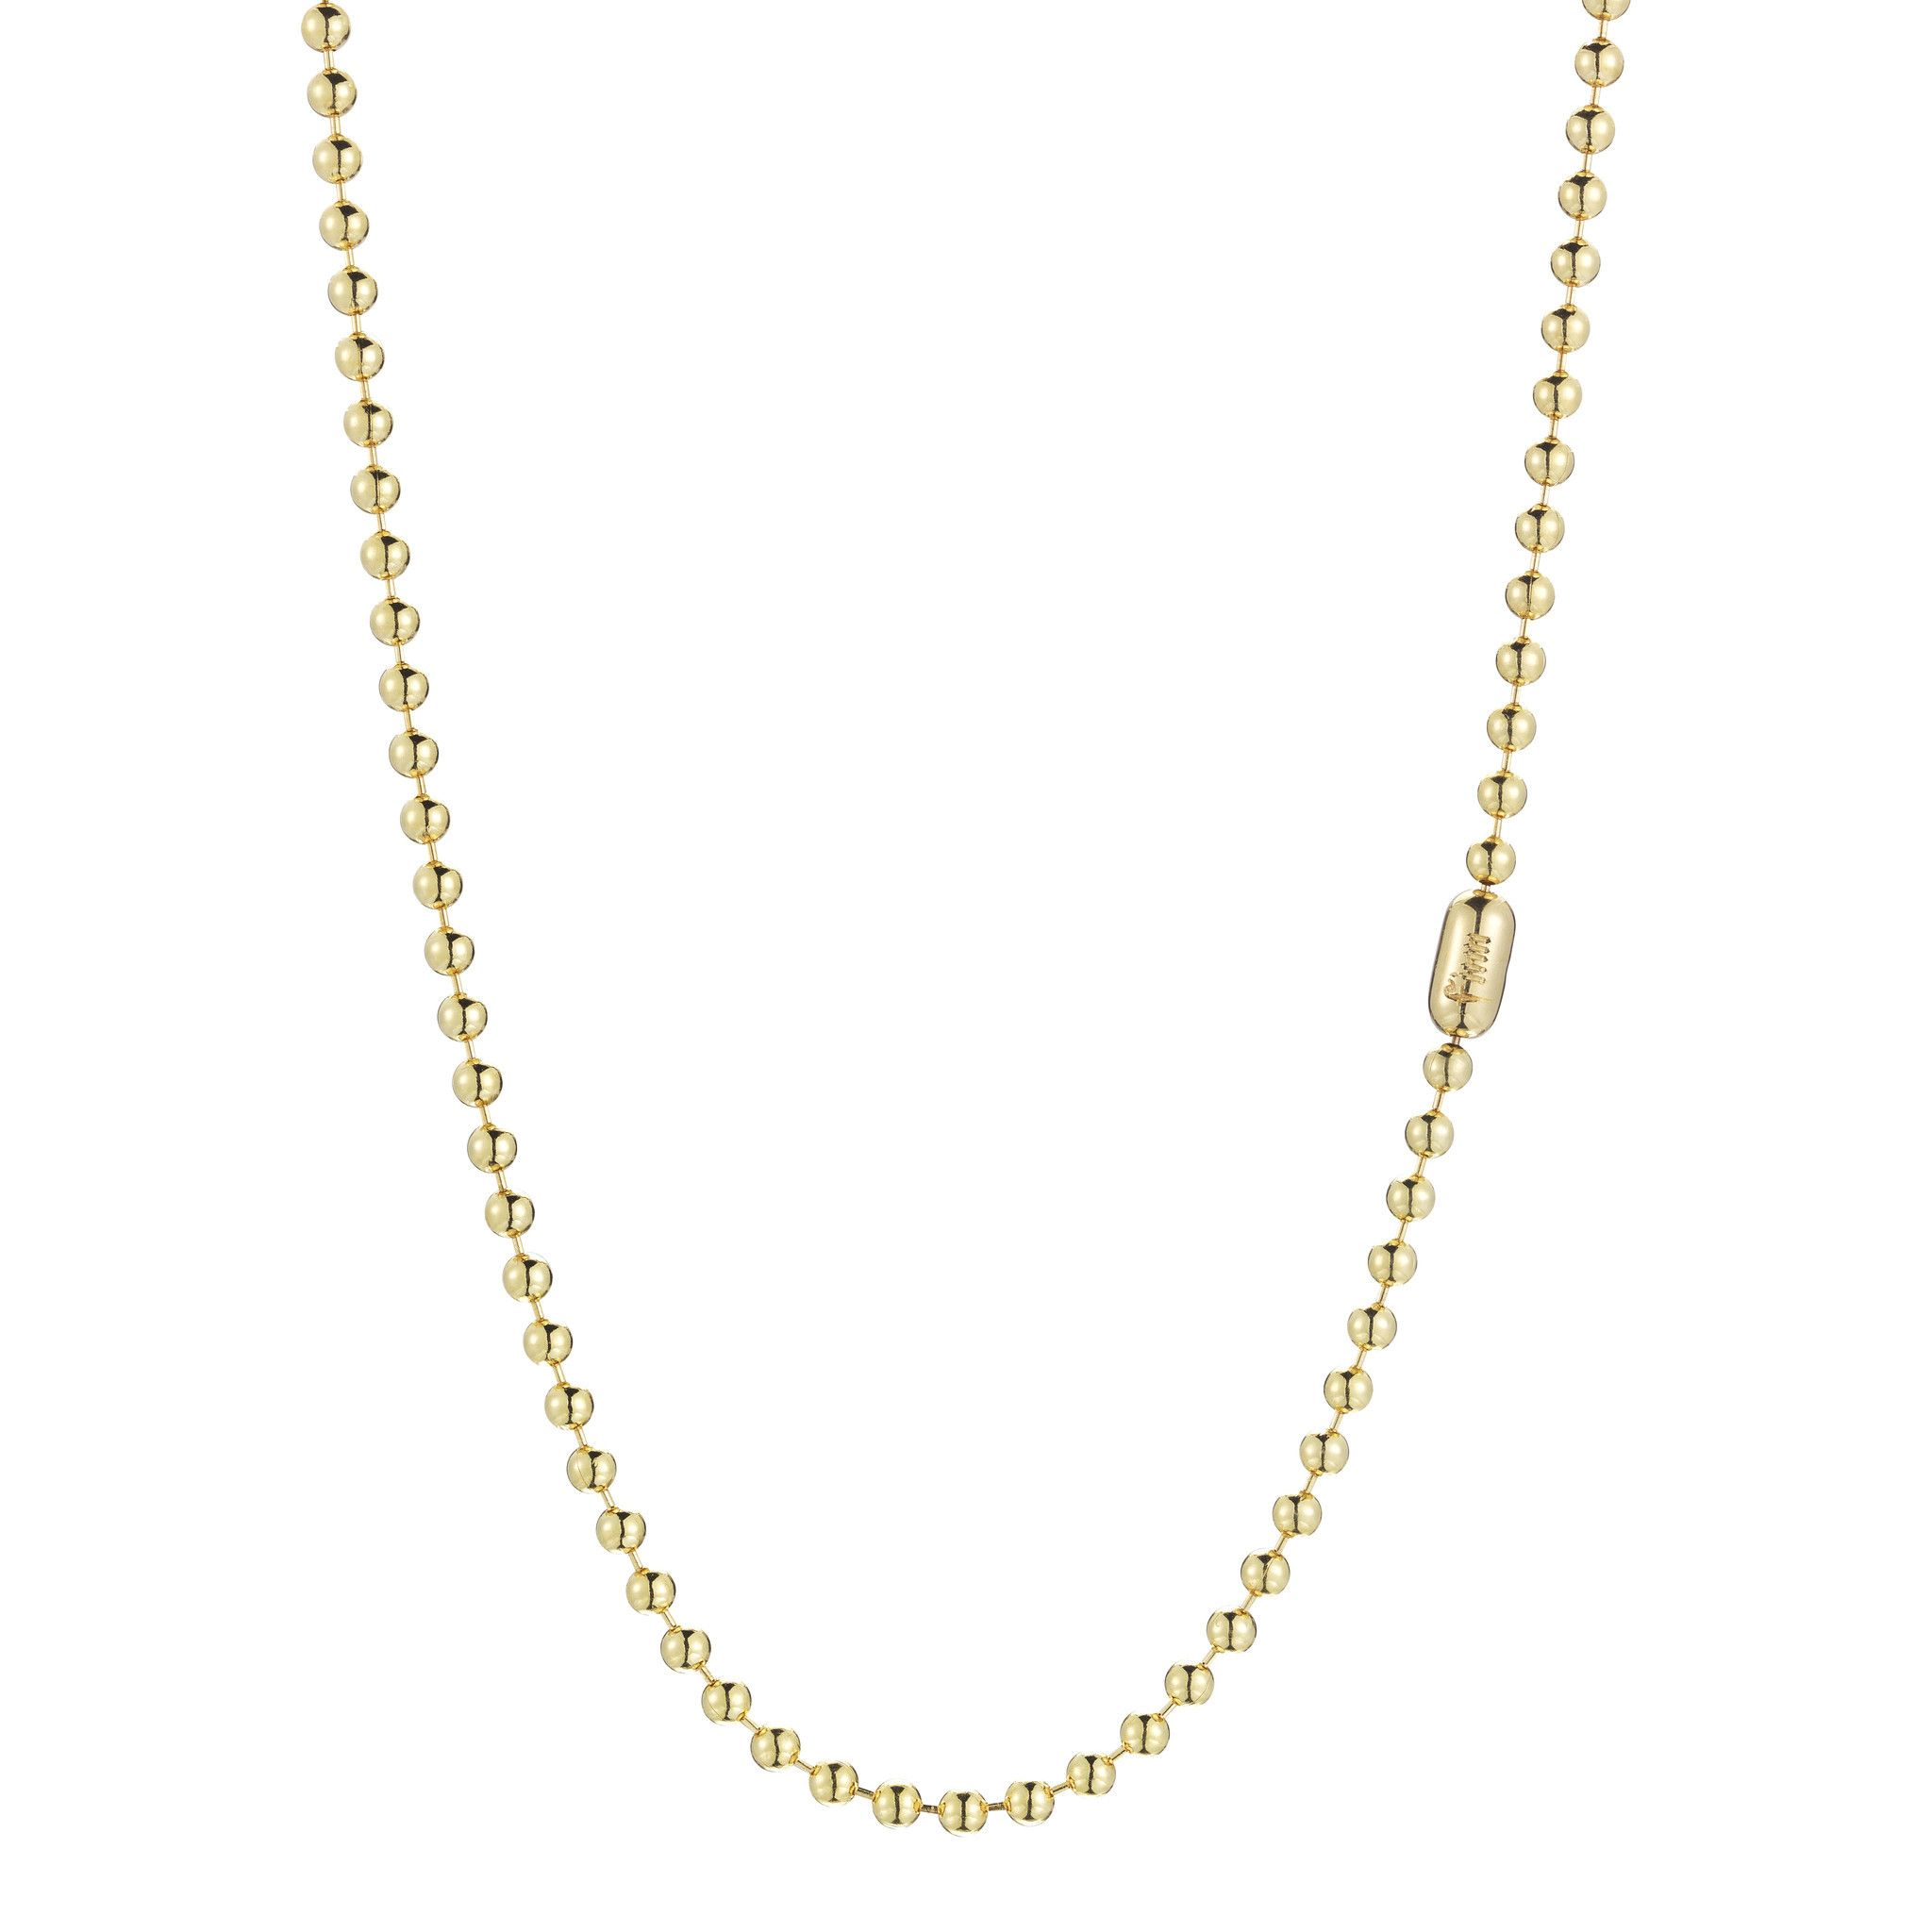 pav gold pave necklace ball chains diamond white